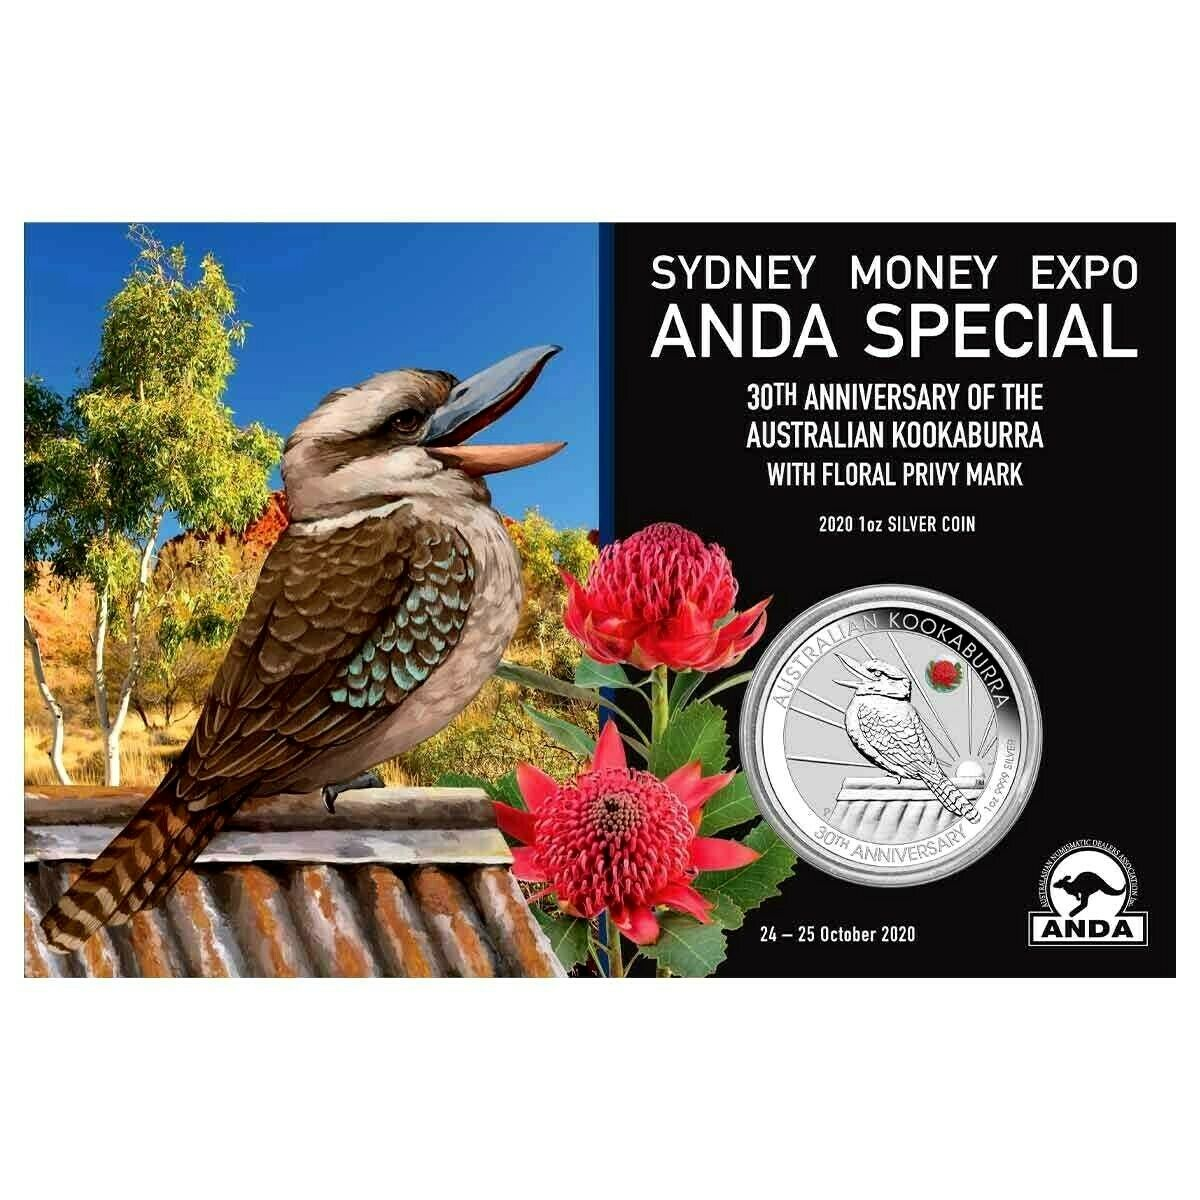 Thumbnail for 2020 Sydney ANDA Expo Special 30th Anniversary Australian Kookaburra 1oz Silver Coin with Floral Privy Mark